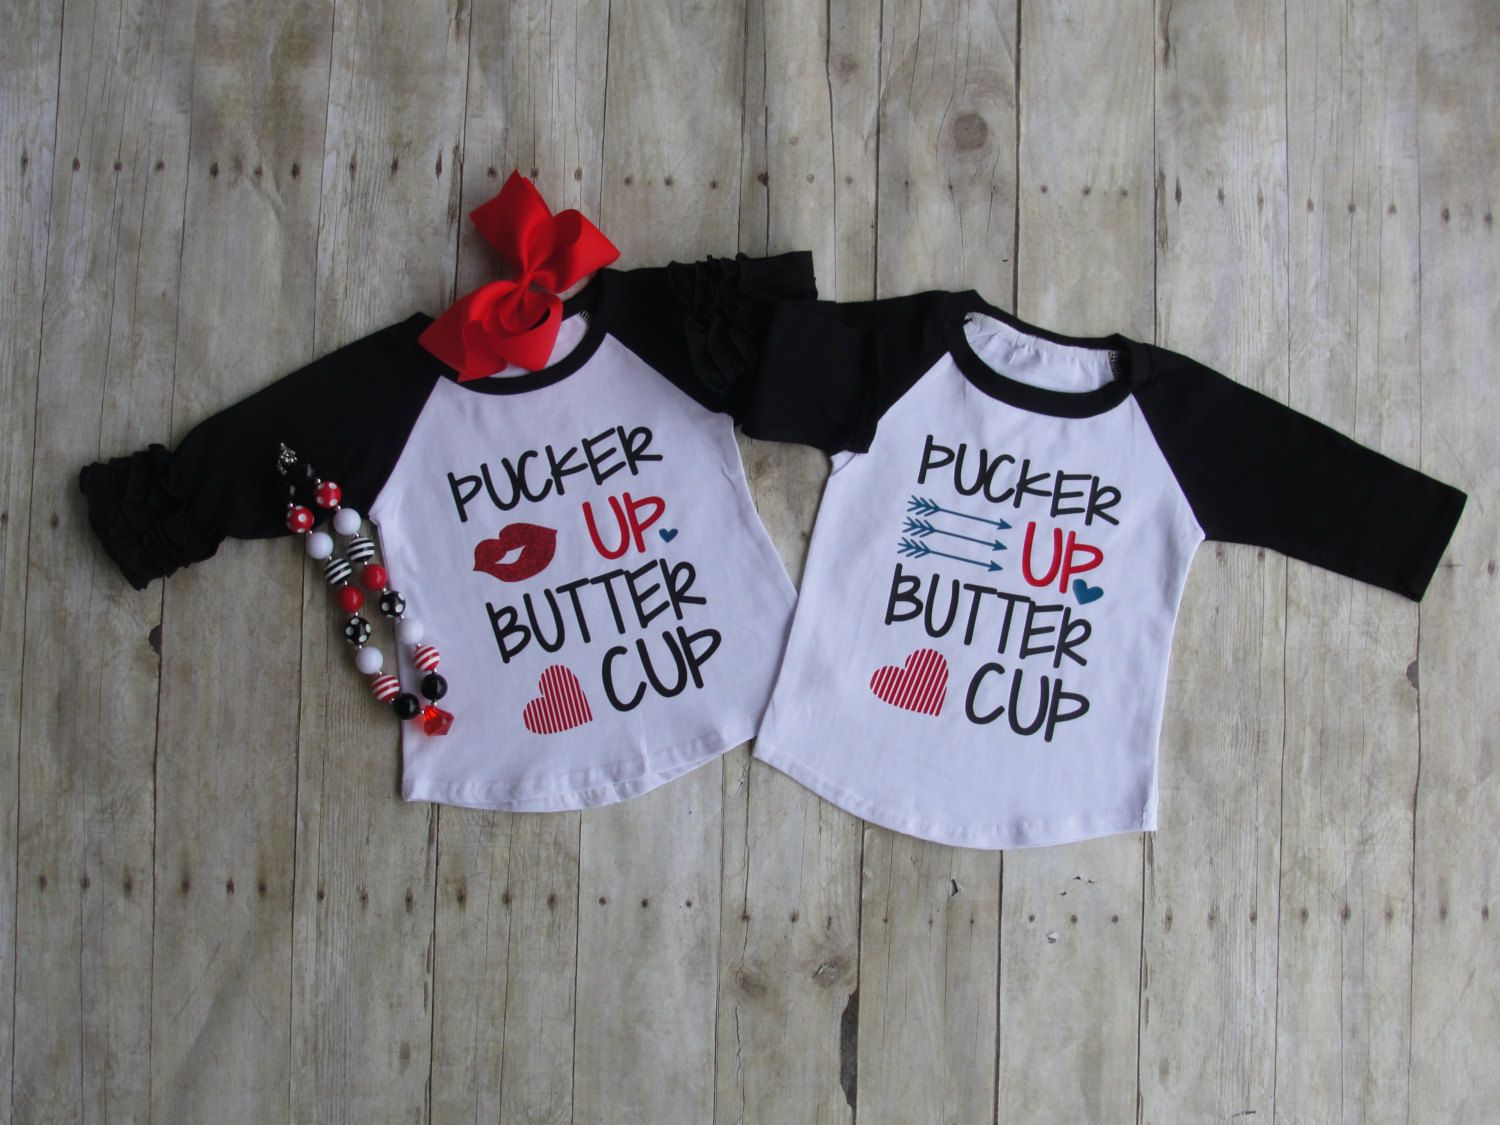 Valentineu0027s Day Shirt, Boys, Girls, Valentine Shirt, Pucker Up Butter Cup,